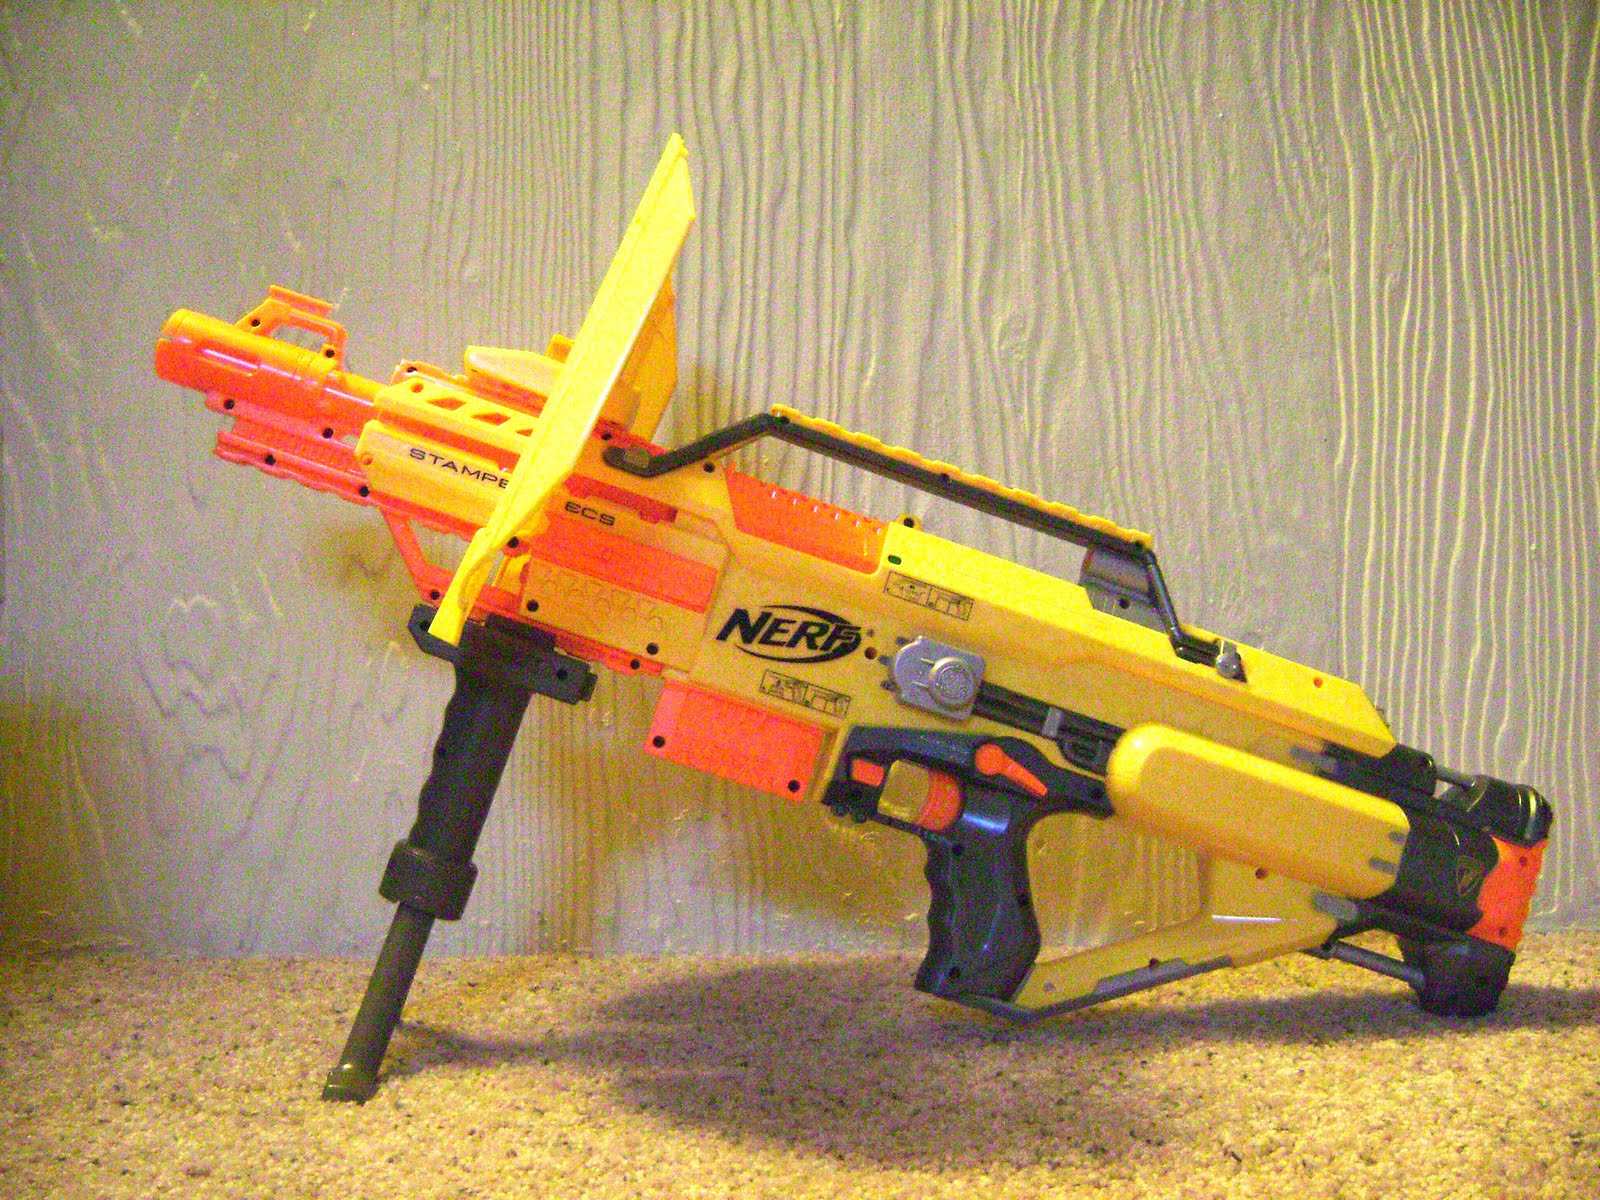 Nerf Stampede ECS with Blast shield and Bipod